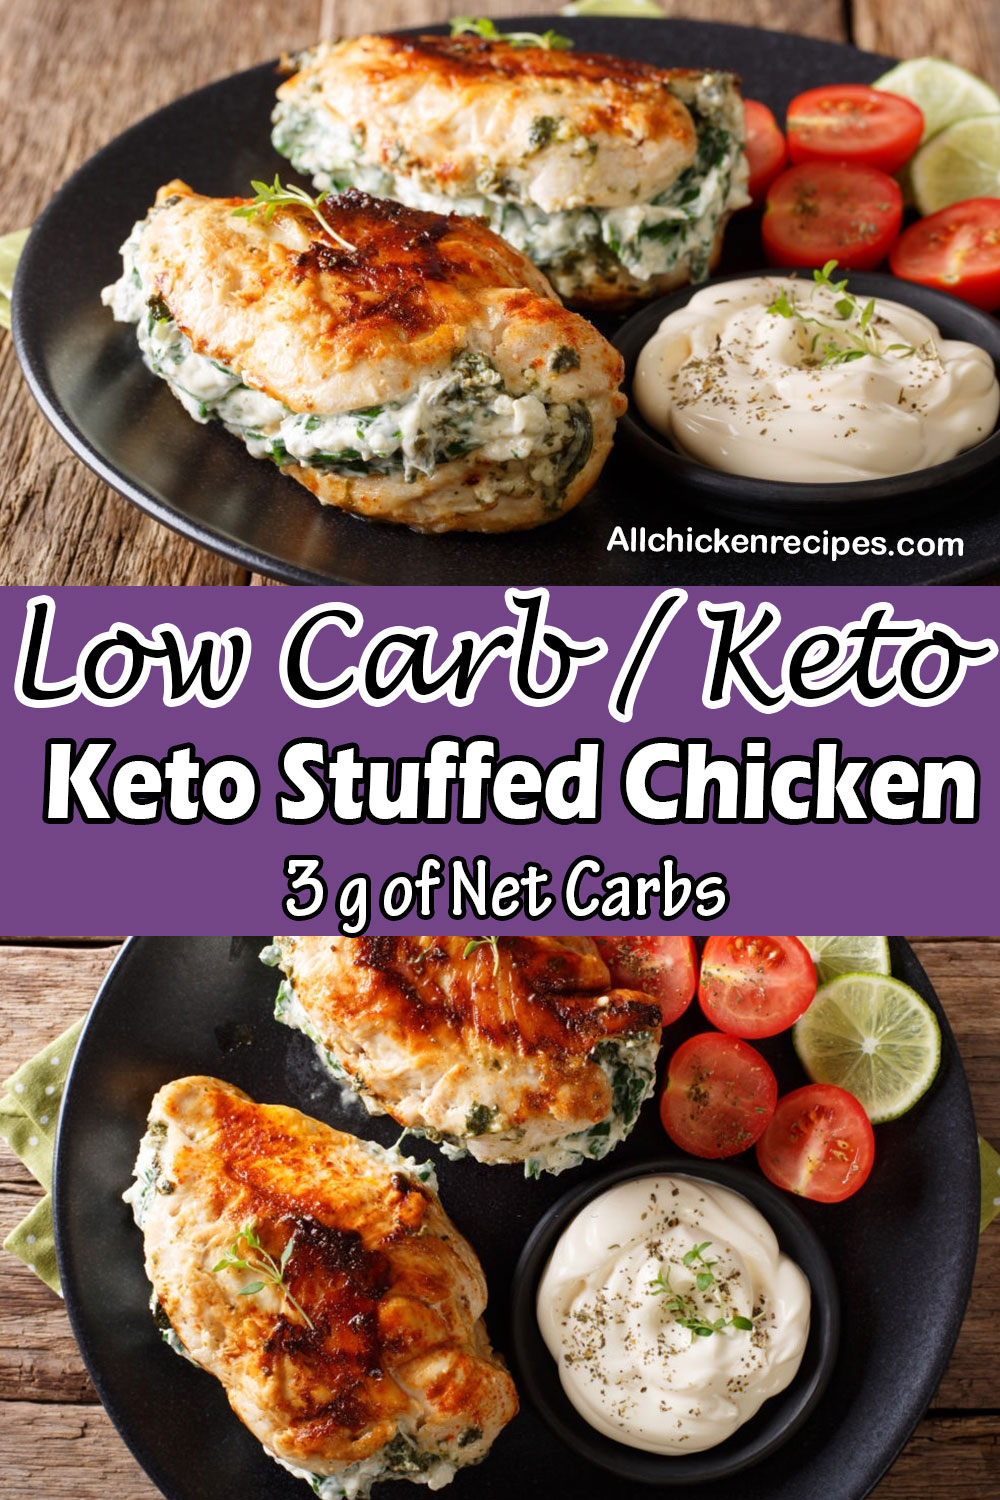 Low Carb Keto Stuffed Chicken